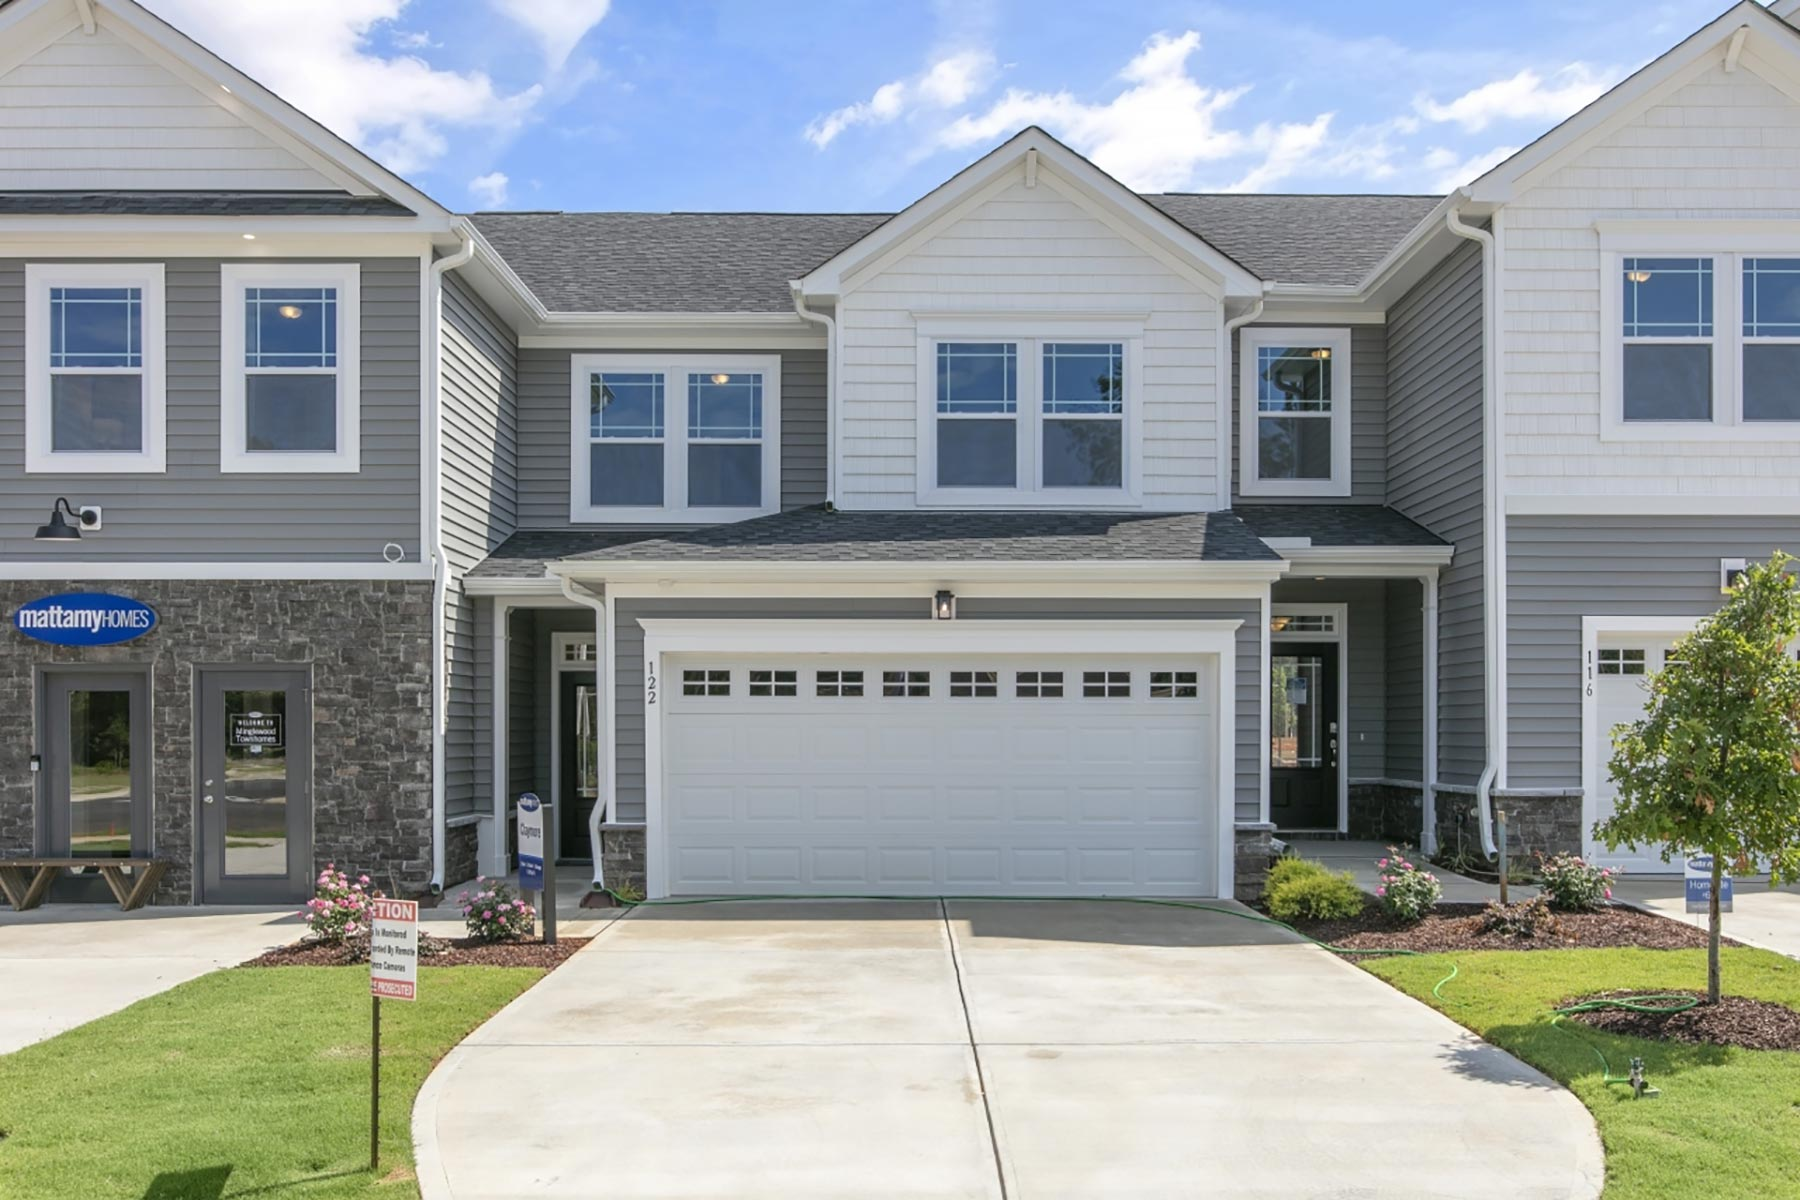 Claymore Plan TownHomes at Minglewood Townhomes in Garner North Carolina by Mattamy Homes